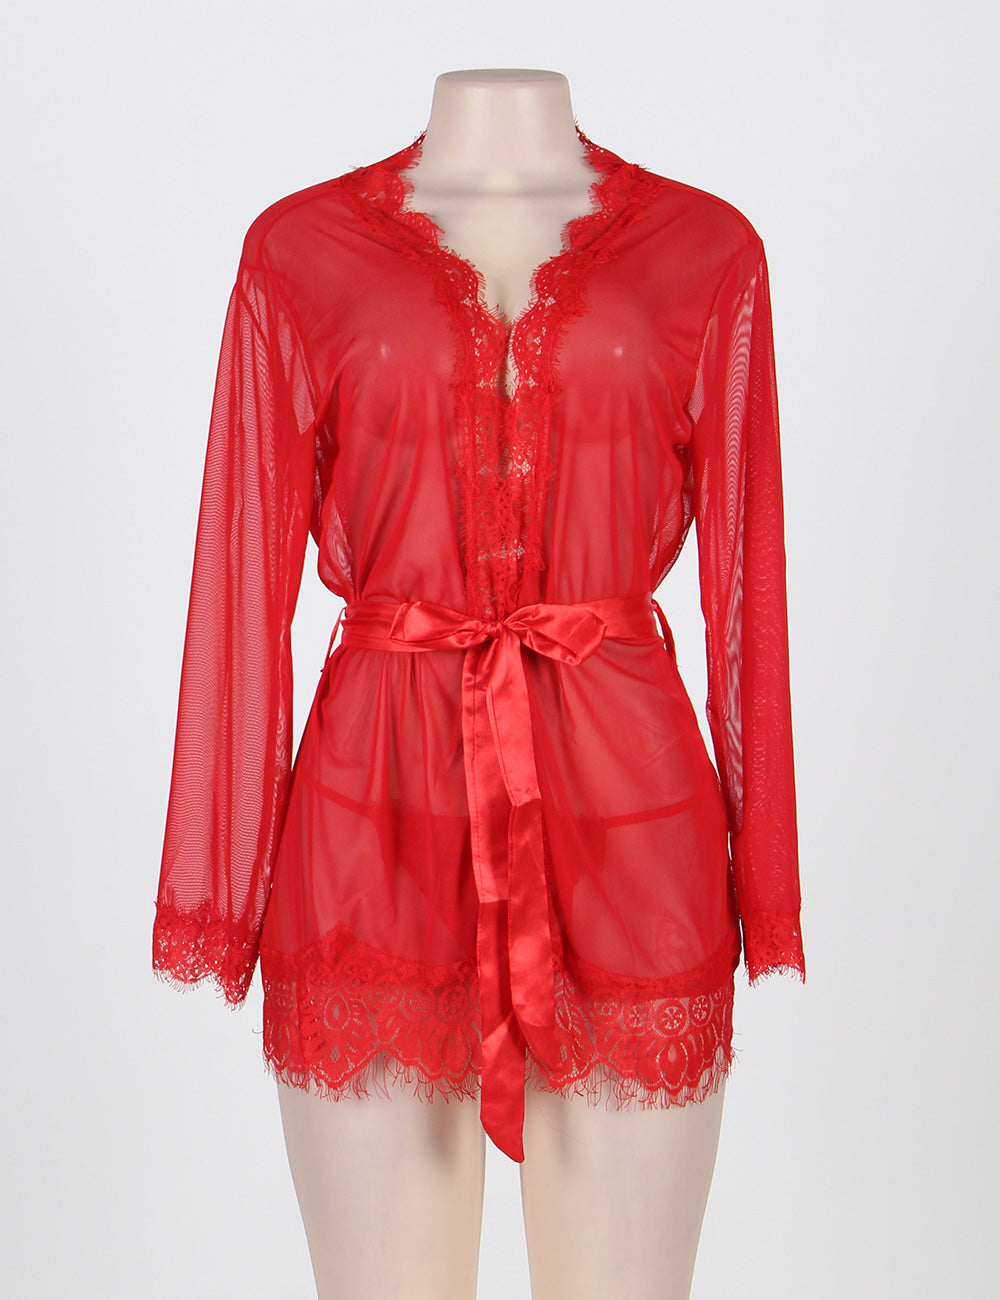 Sexy Red Lace Short Kimono Dressing Gown Lingerie